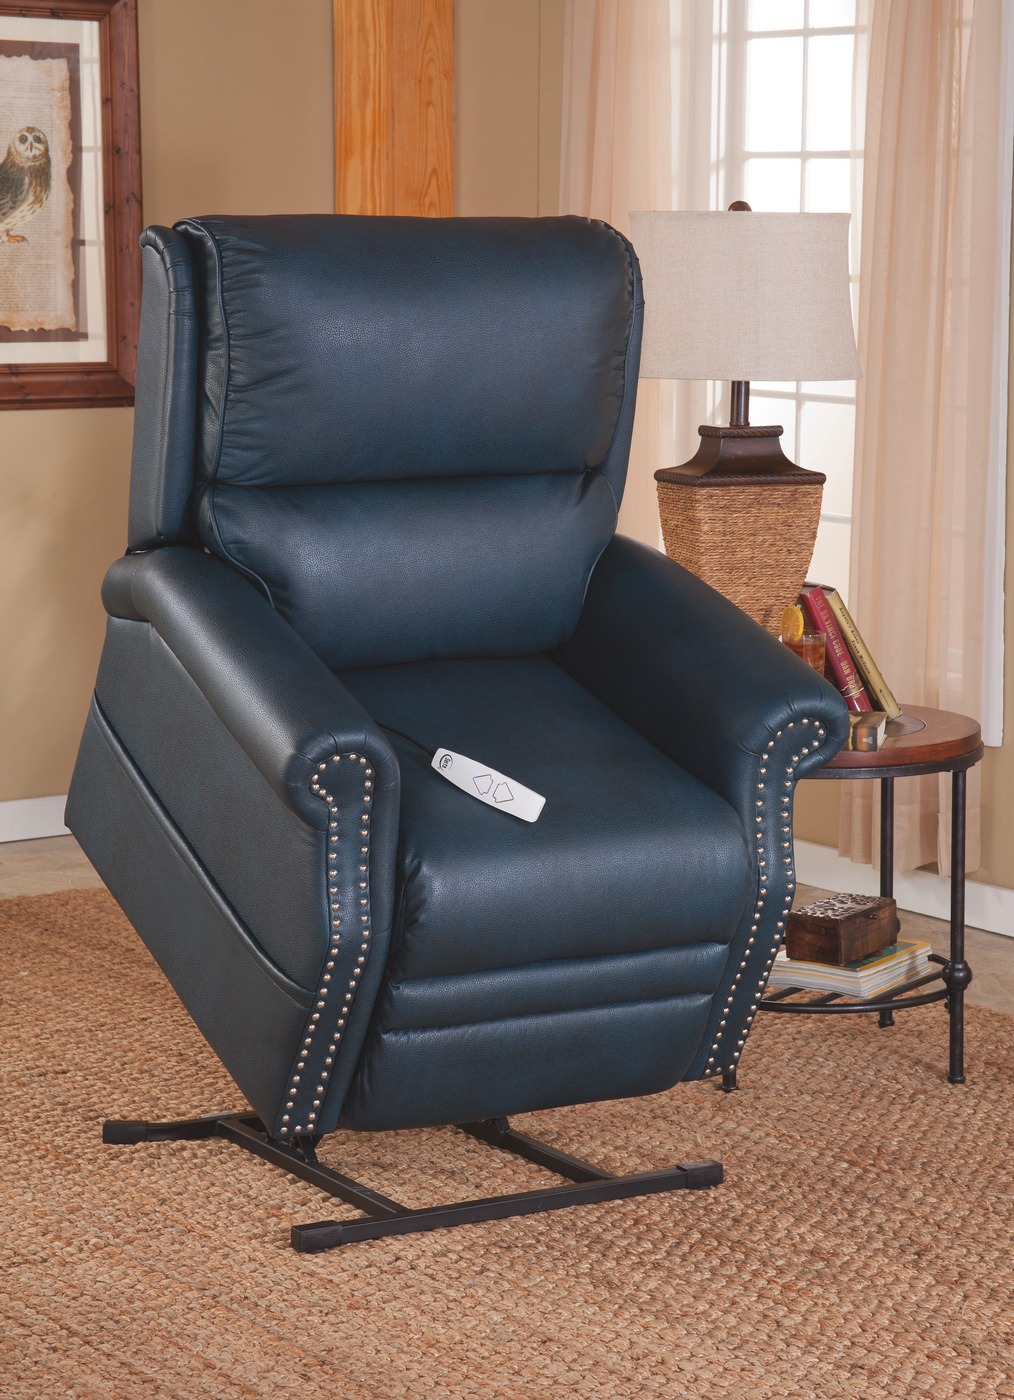 Serta Comfortlift Sheffield Kelp Blue Reclining Lift Chair